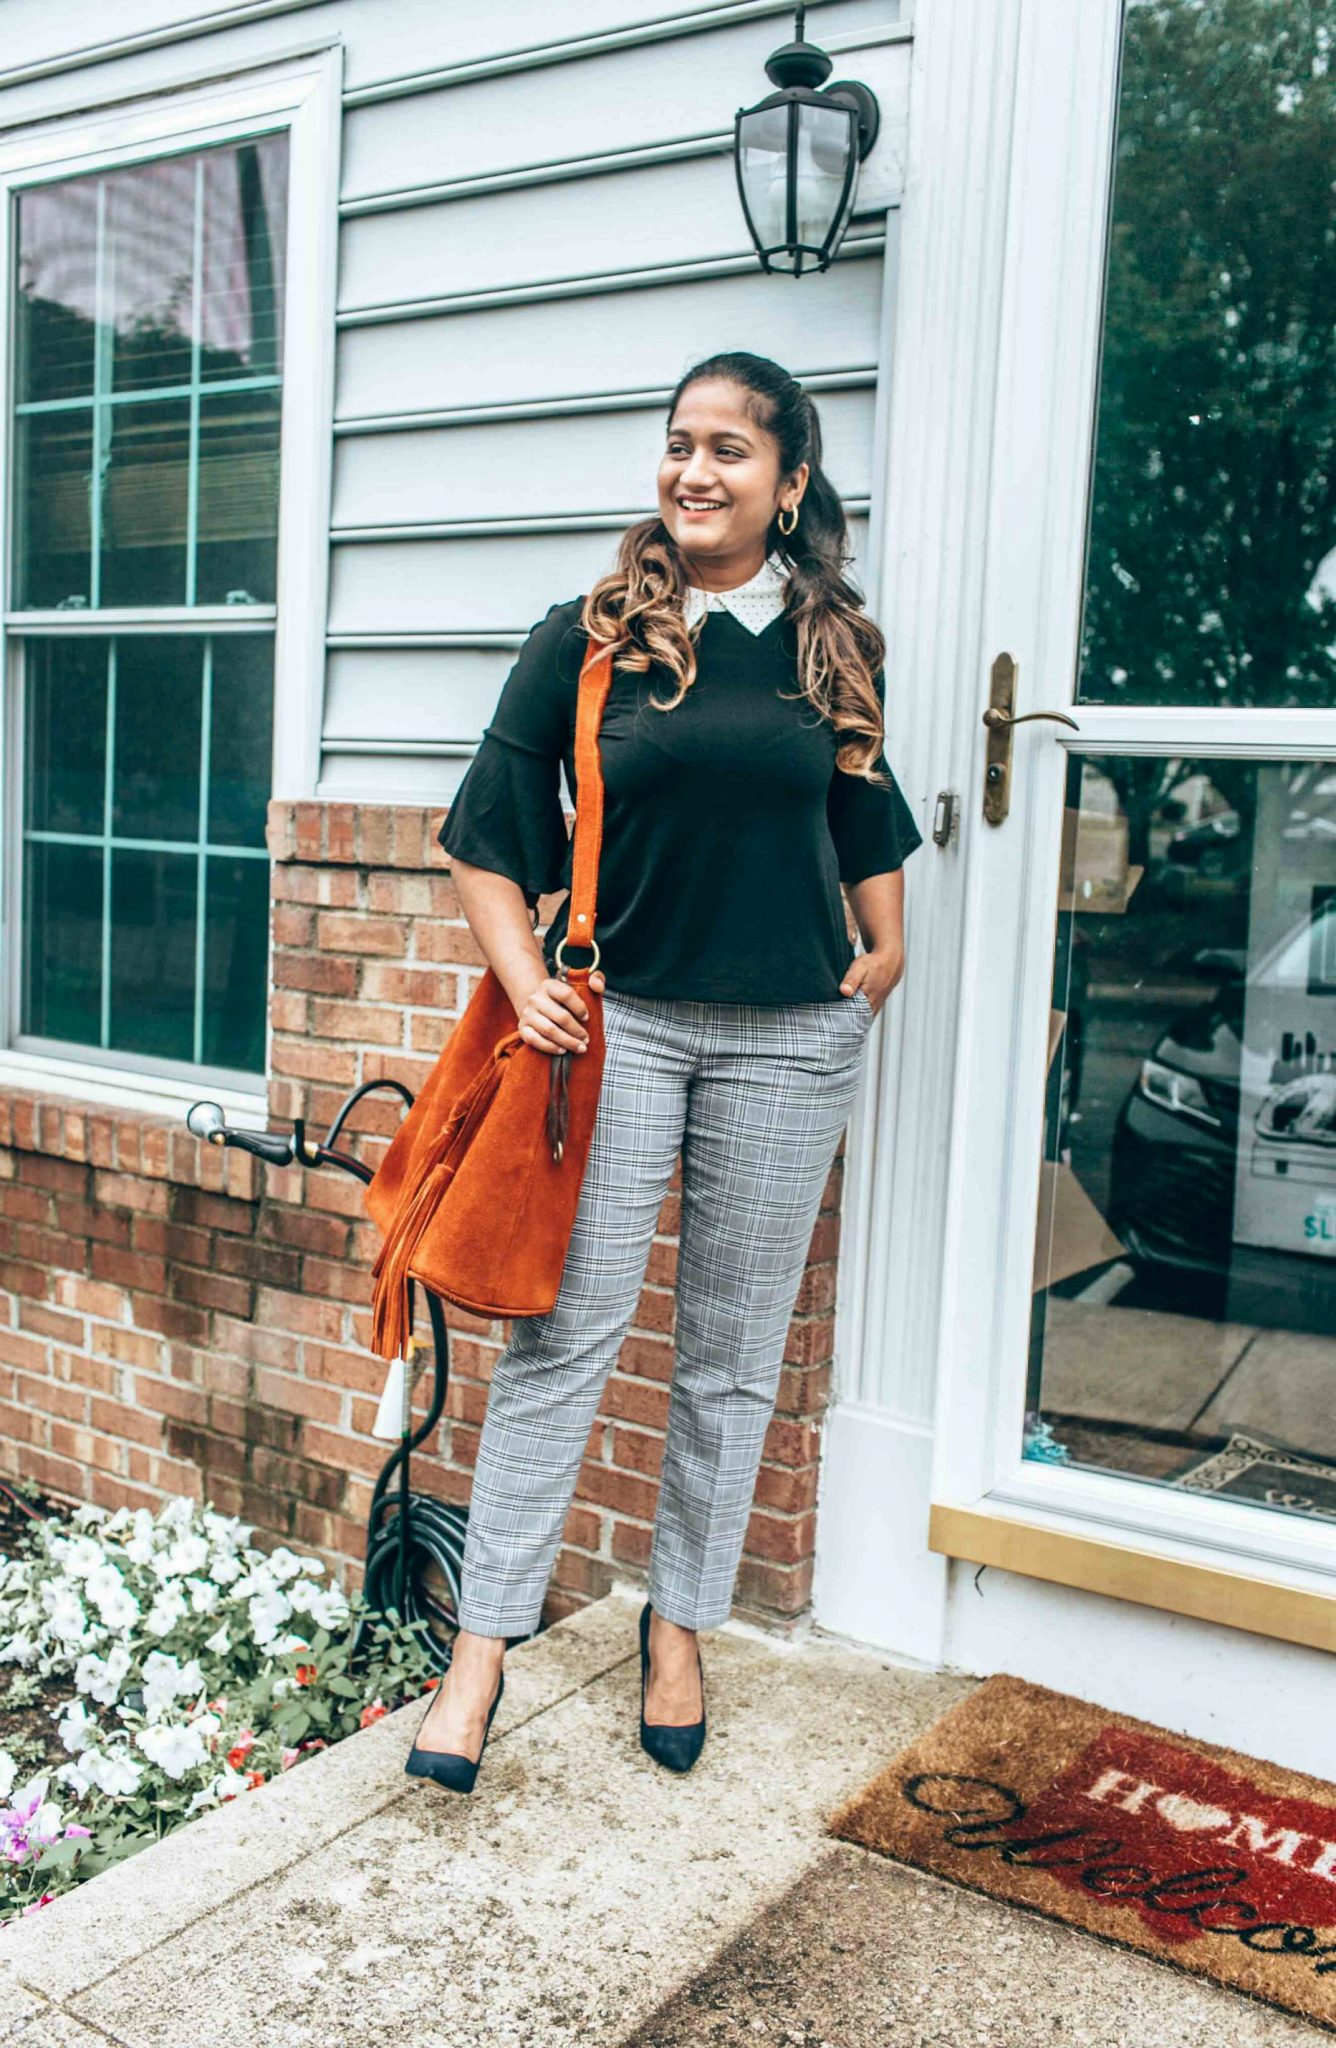 wearing Treasure & Bond Cropped Trousers in check - Nordstrom Anniversary Sale top picks featured by popular Ohio modest fashion blogger, Dreaming Loud